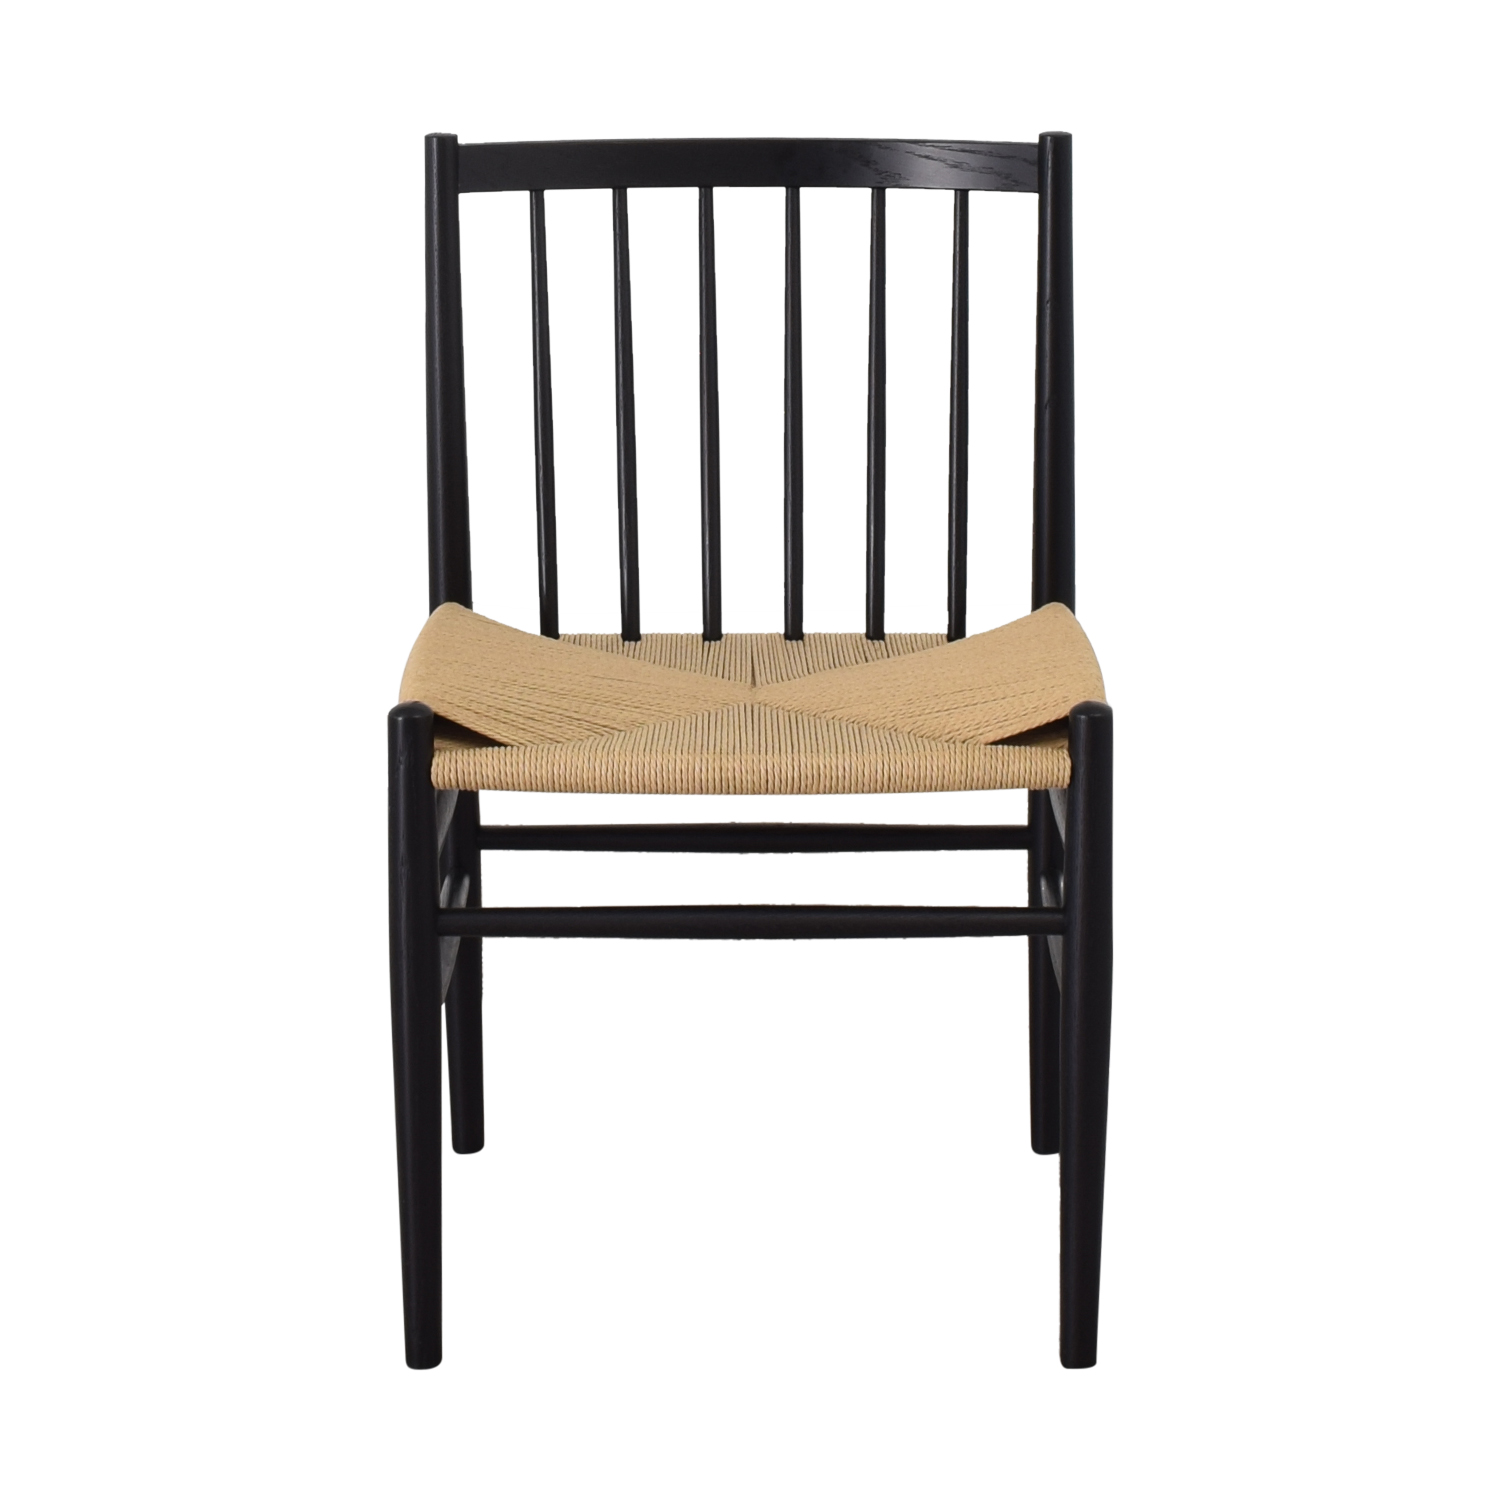 Mater Mater J80 Dining Side Chair for sale